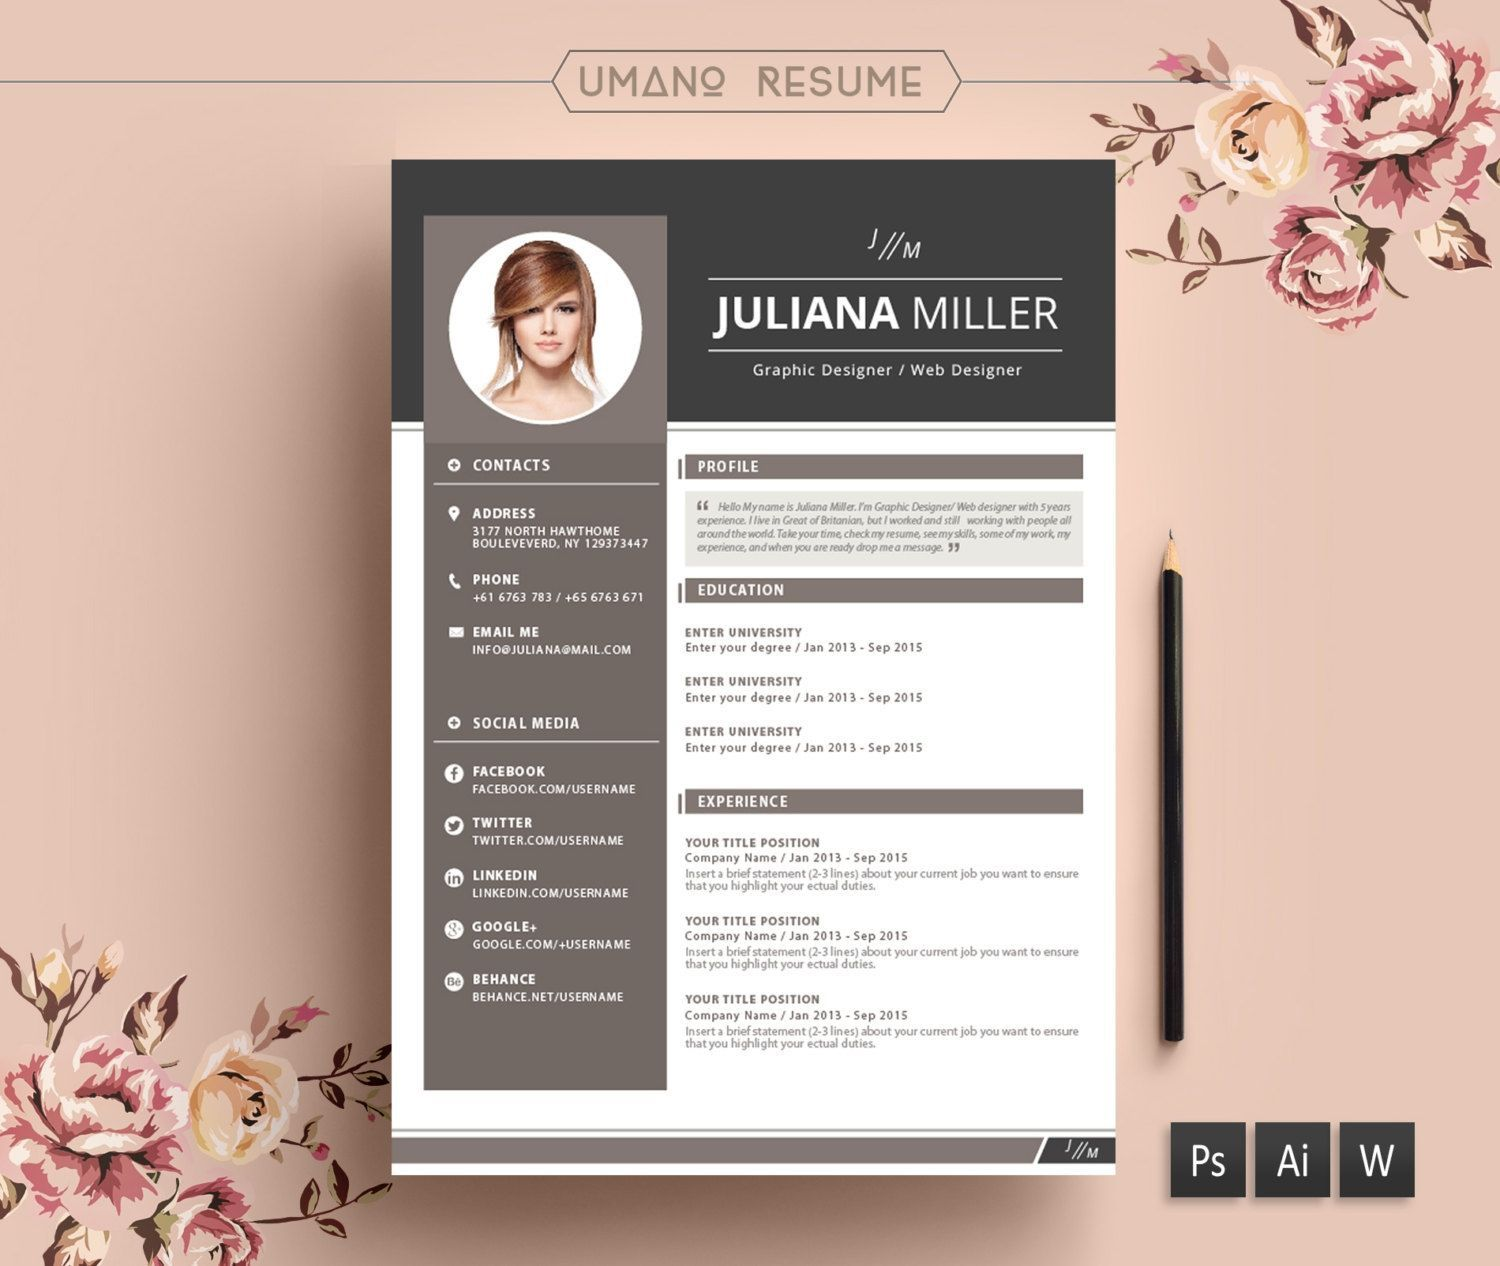 004 Dreaded Creative Resume Template Free Download High Resolution  For Microsoft Word Fresher Cv DocFull